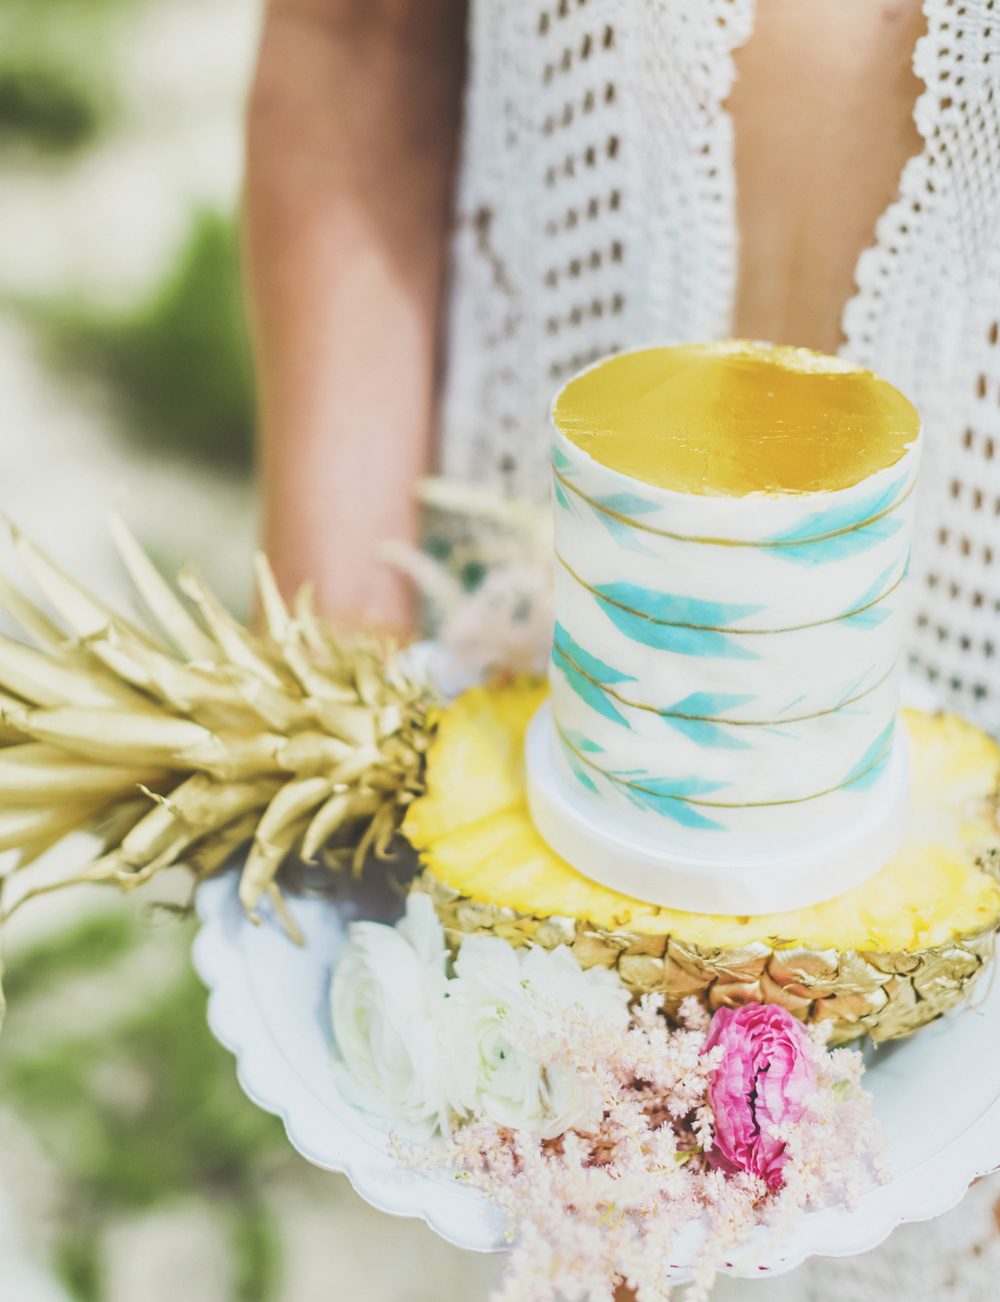 Maui bridal bohemian chic wedding inspiration